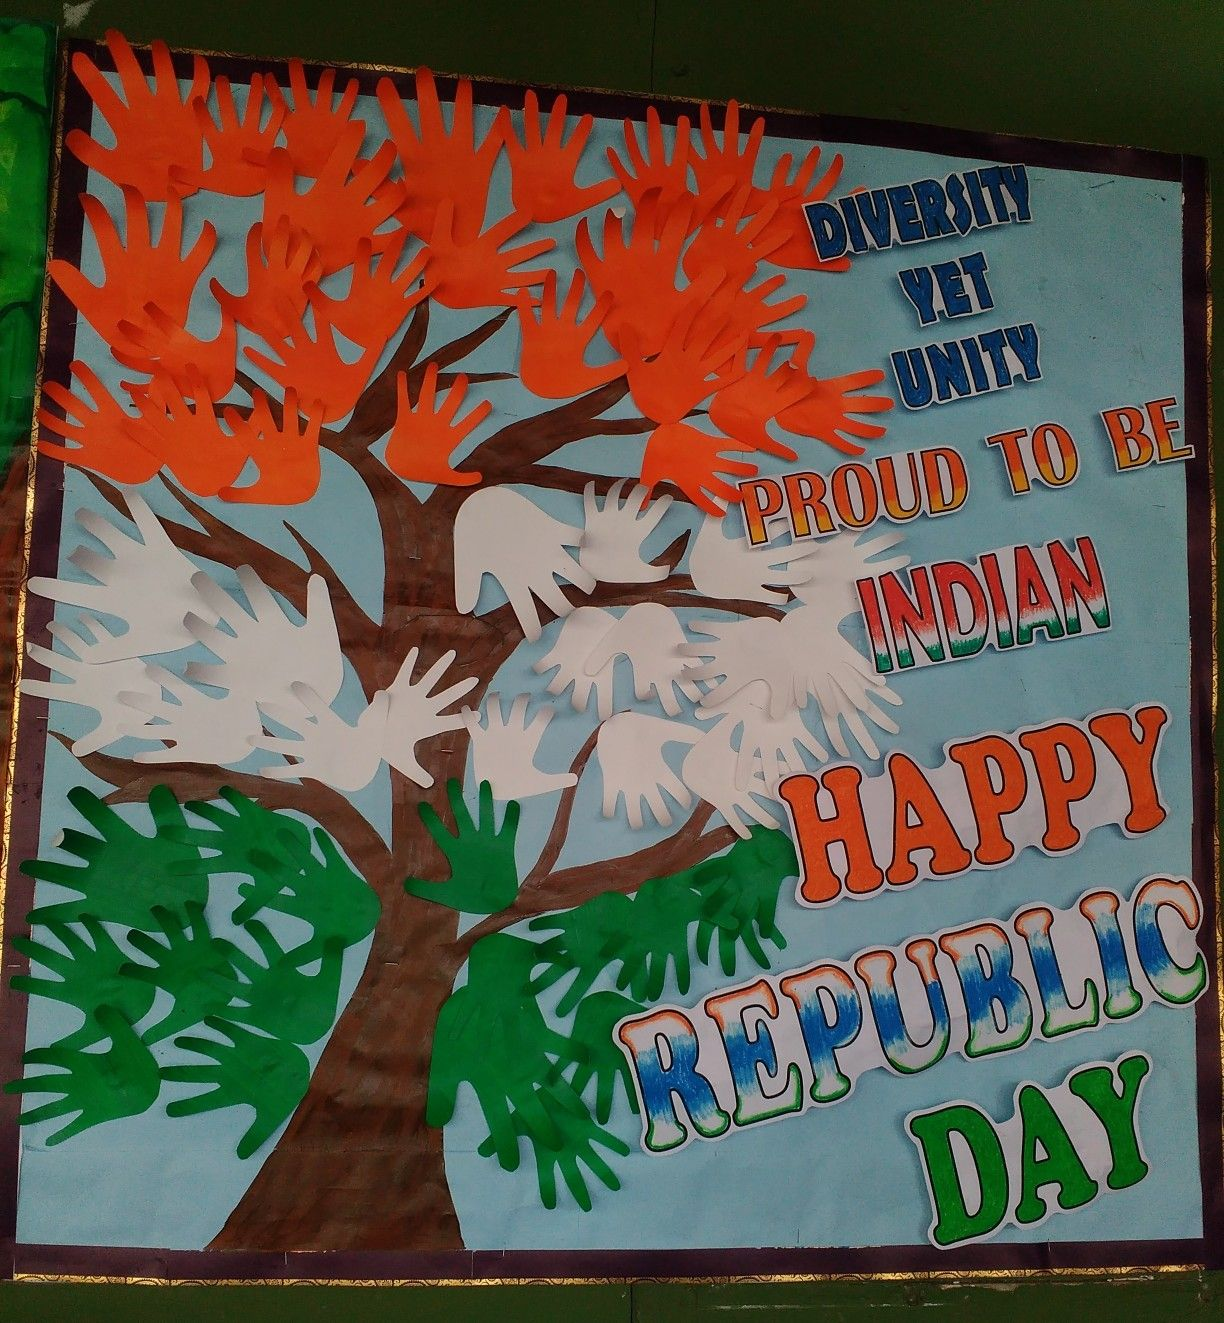 Republic Day Of India Bulletin Board Ideas School Kids Crafts Independence Day Decoration School Board Decoration